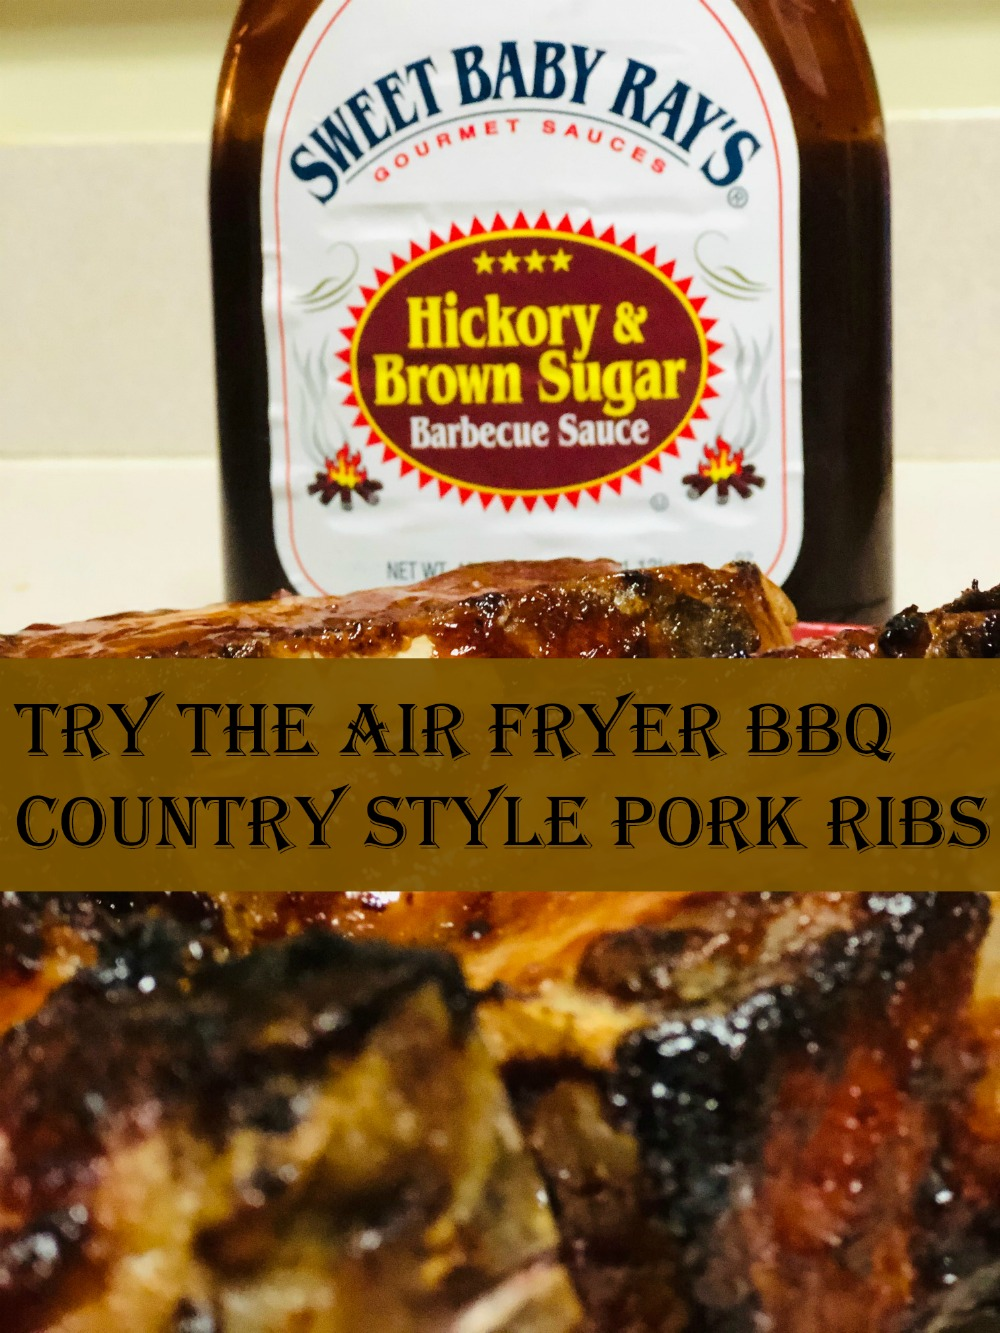 Try the Air Fryer BBQ Country Style Pork Ribs